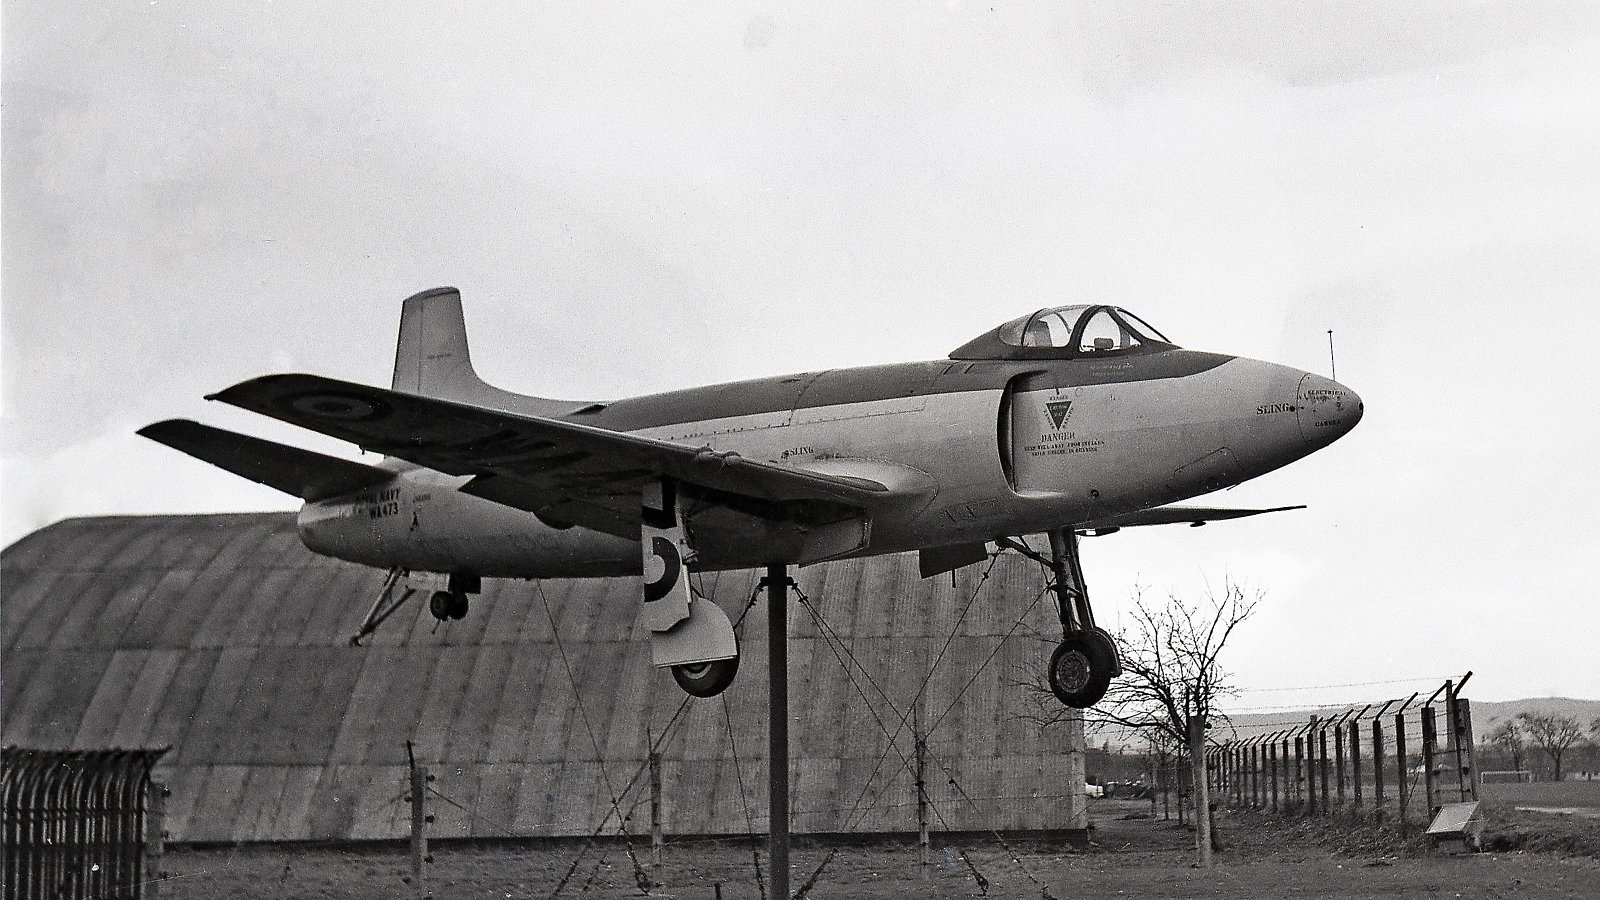 Supermarine Attacker.jpg